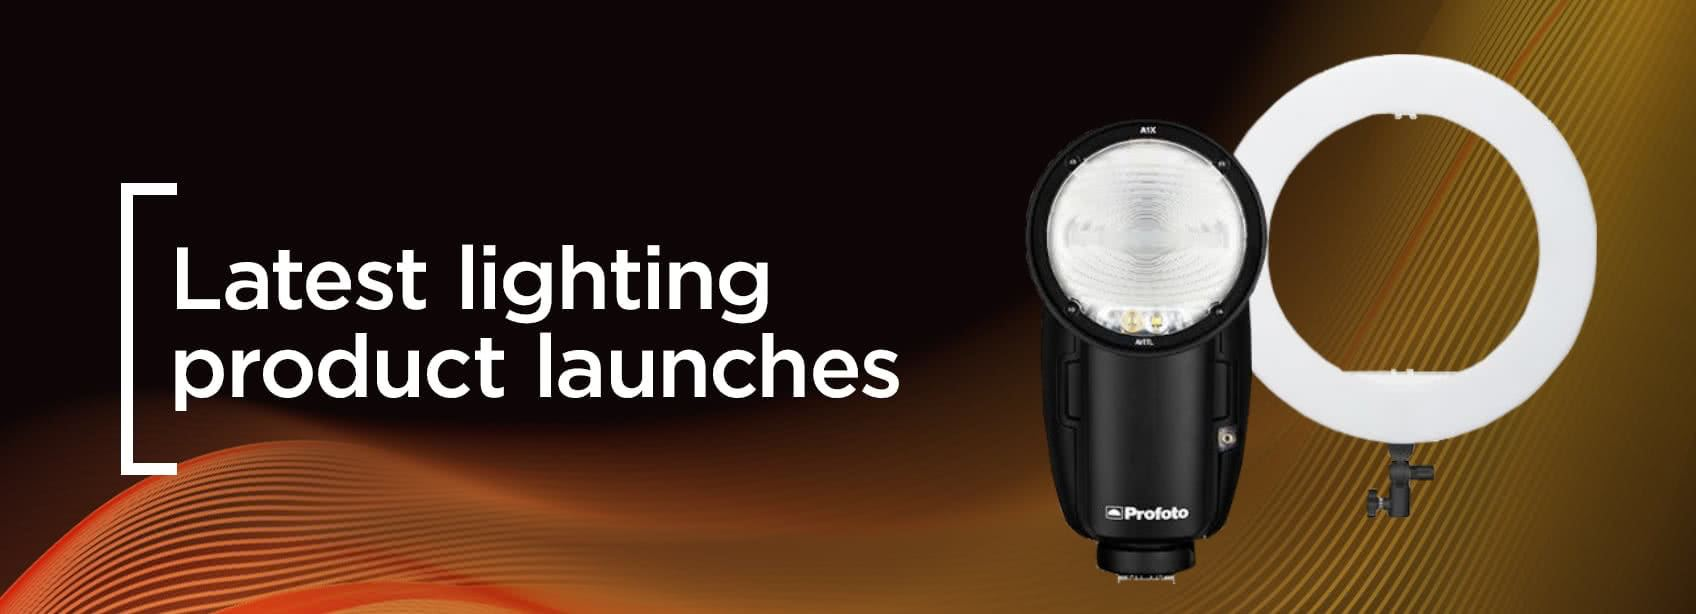 The Latest Lighting Products